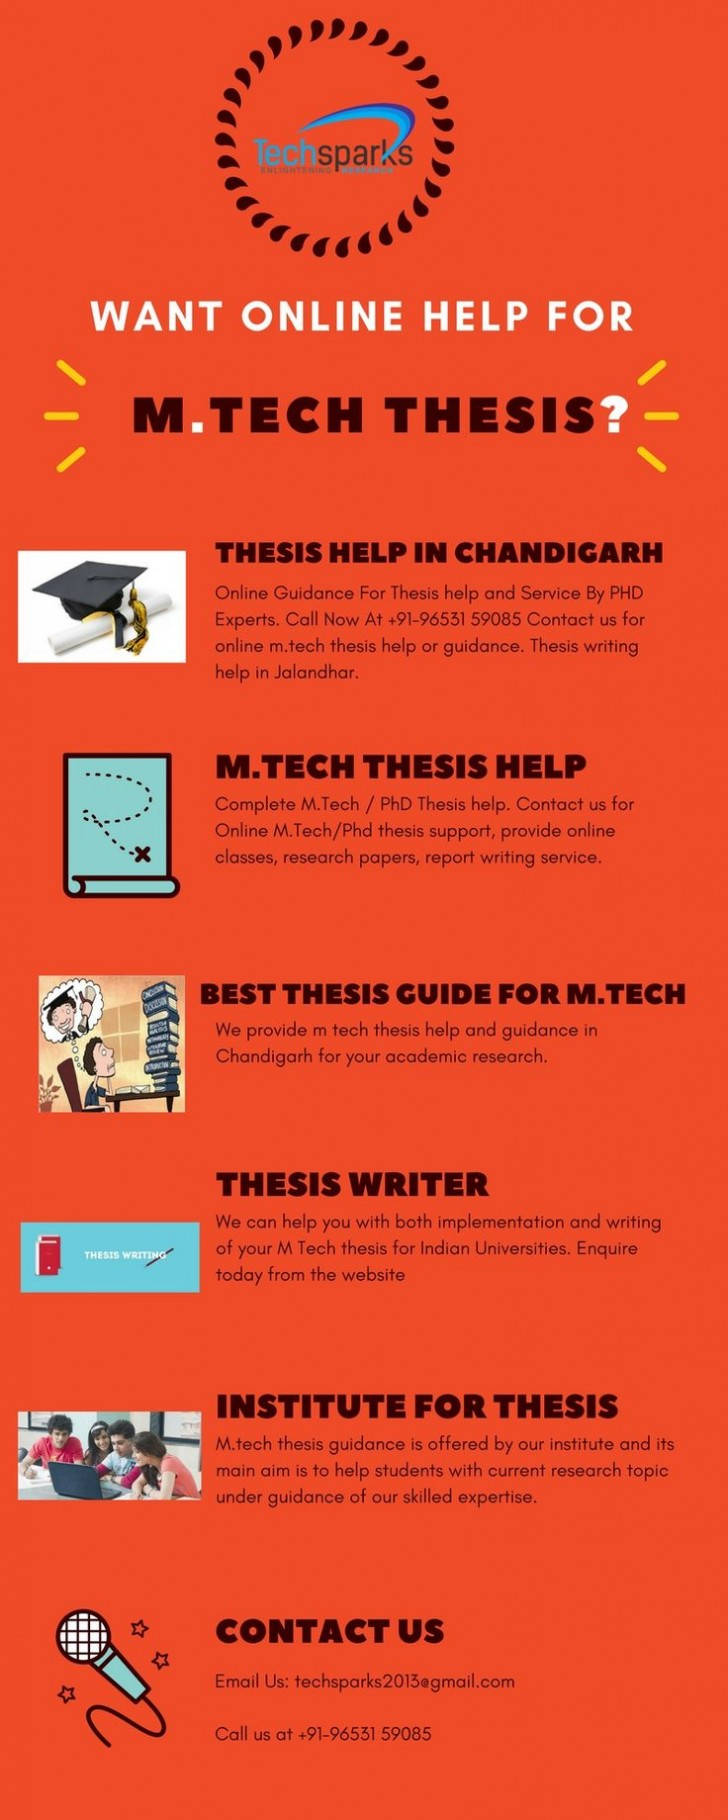 001 Academic Research Paper Writing Services In India Marvelous Best 728